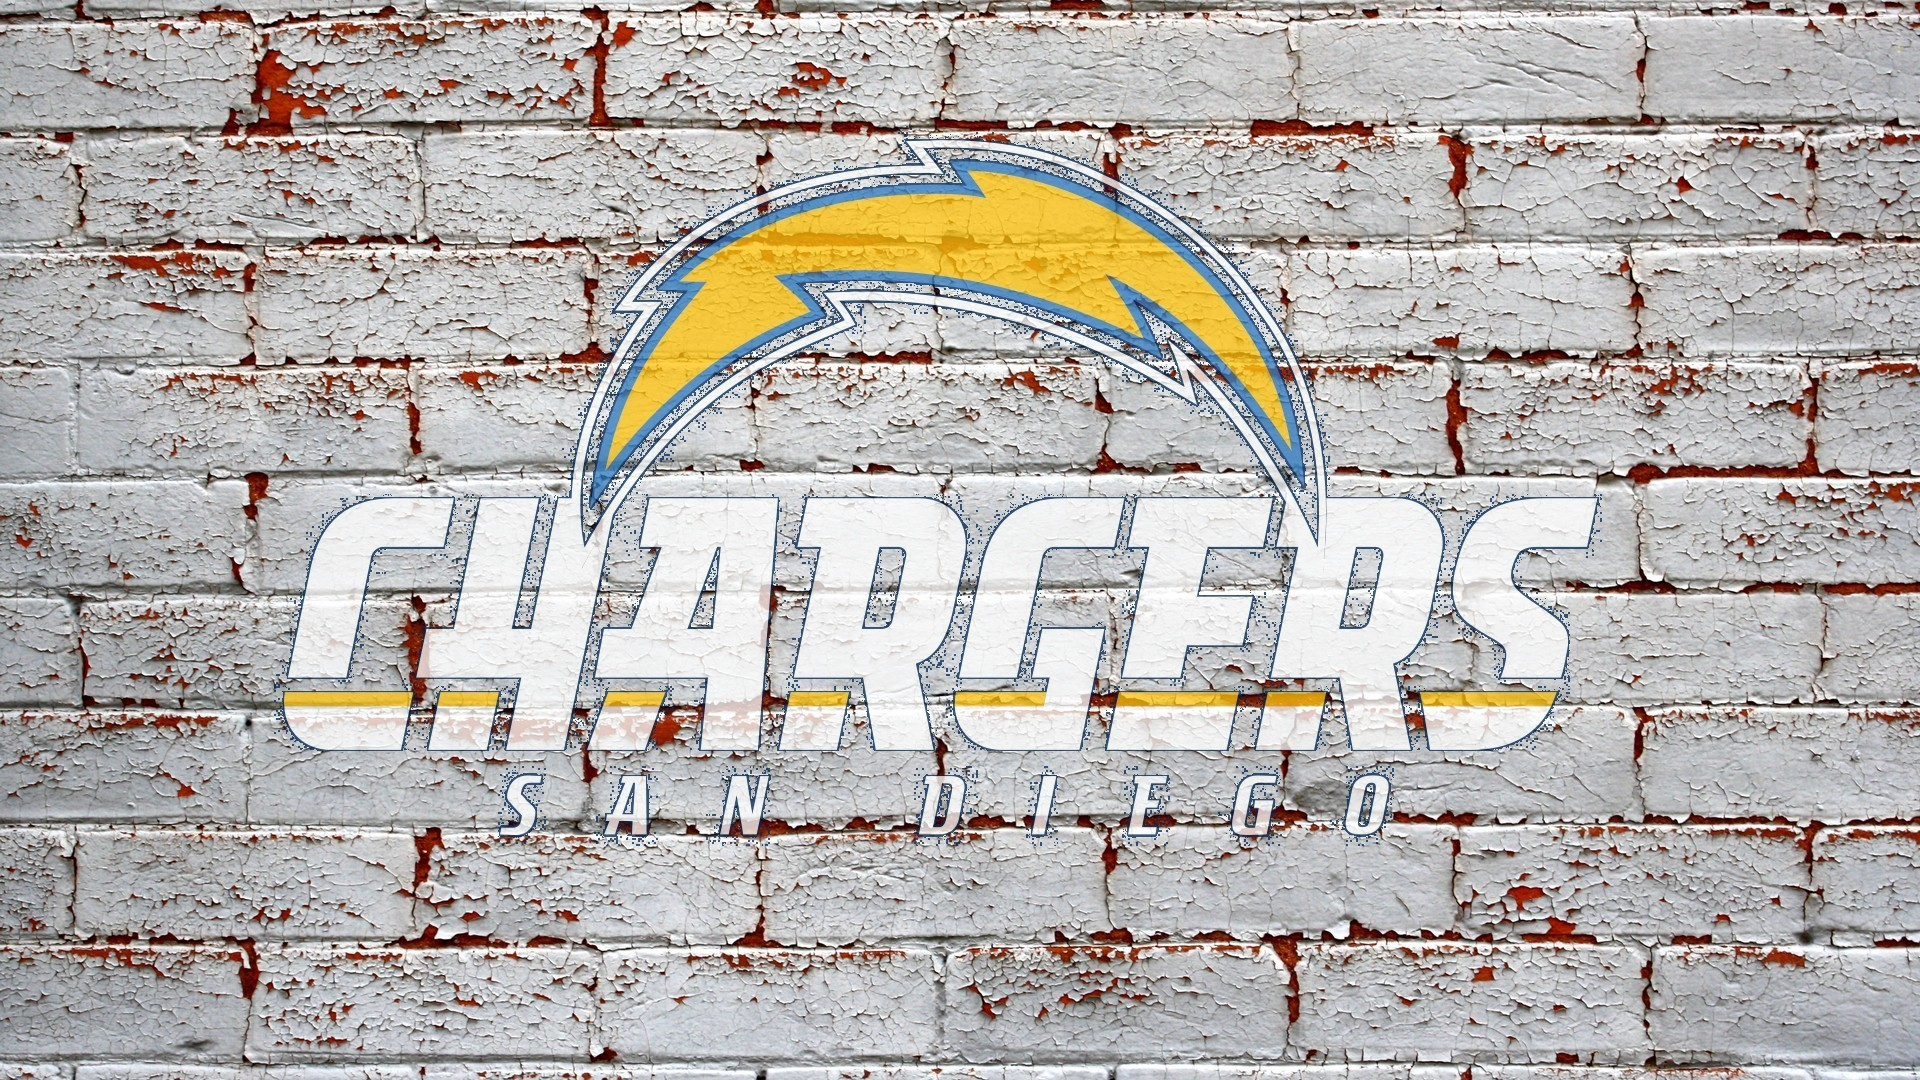 1920x1080  8 HD San Diego Chargers Wallpapers